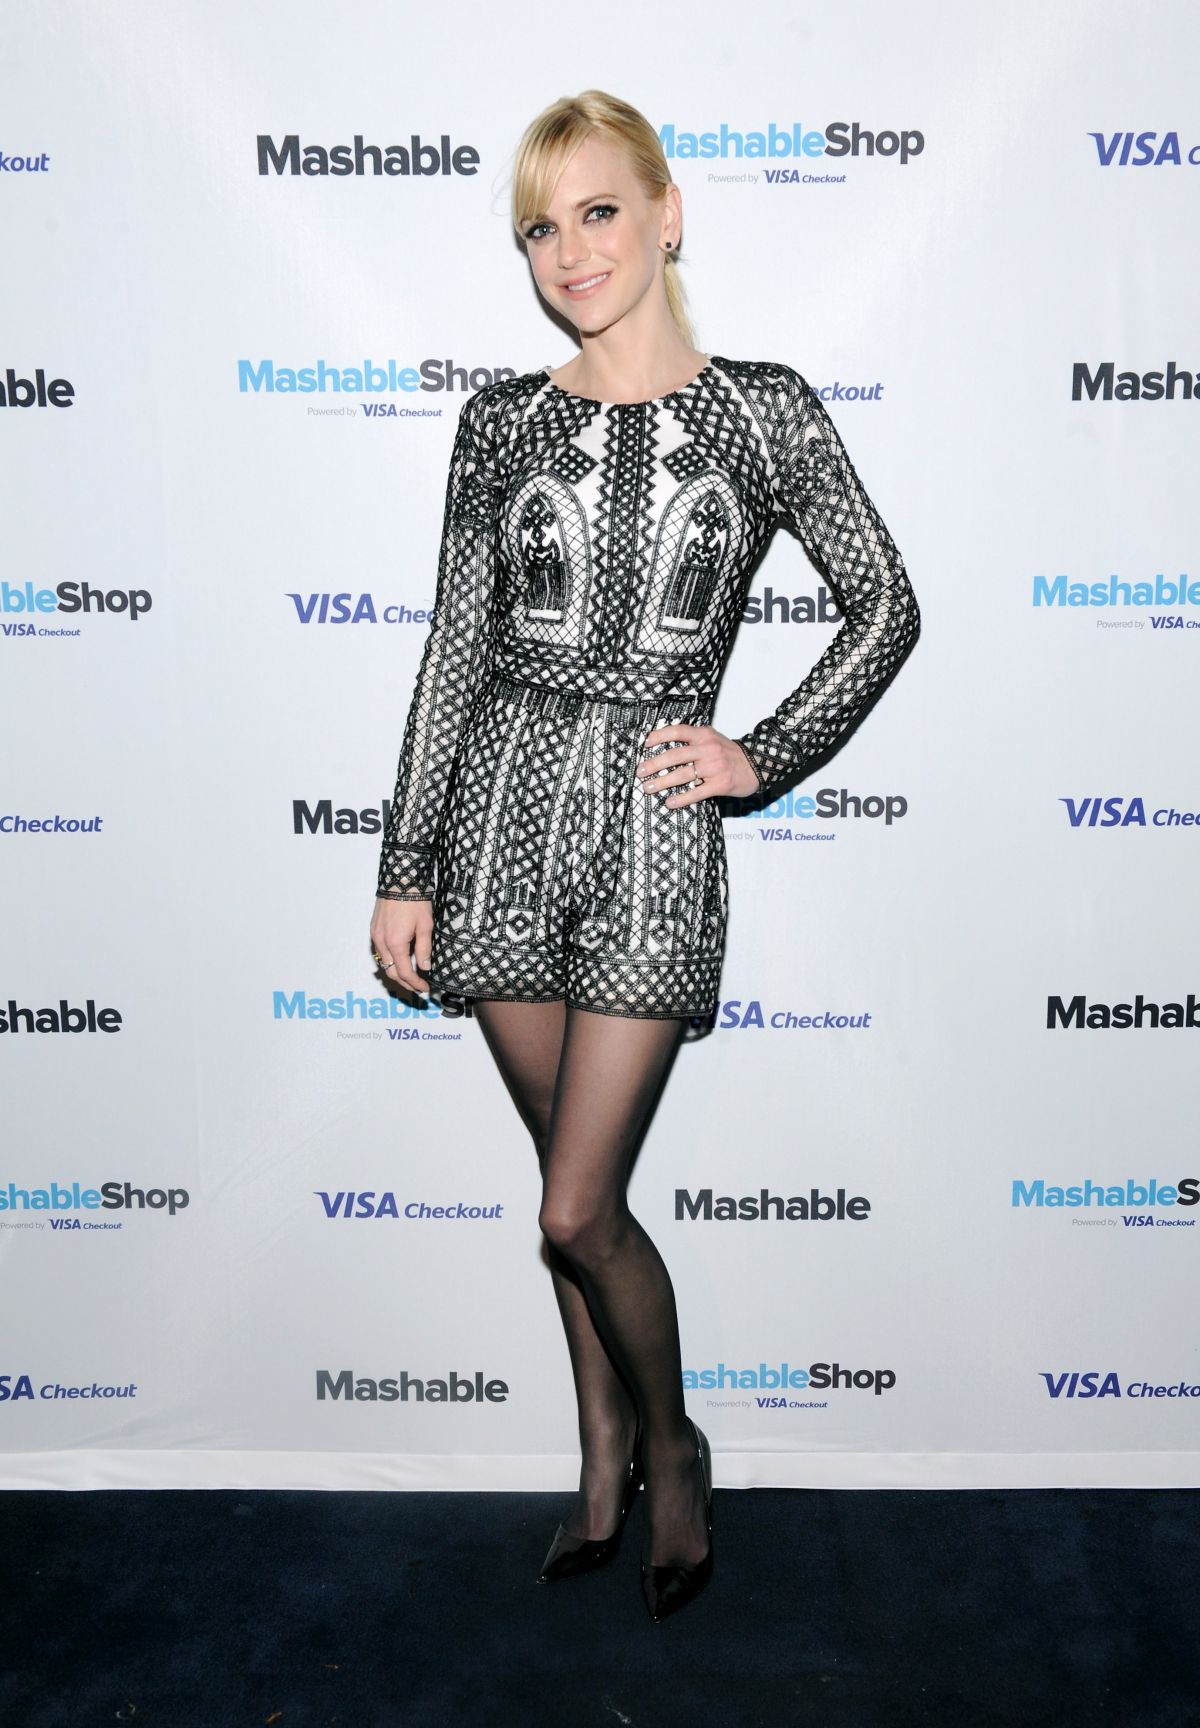 anna-faris-at-mashable-shop-launch-event-in-new-york-12-15-2015_3